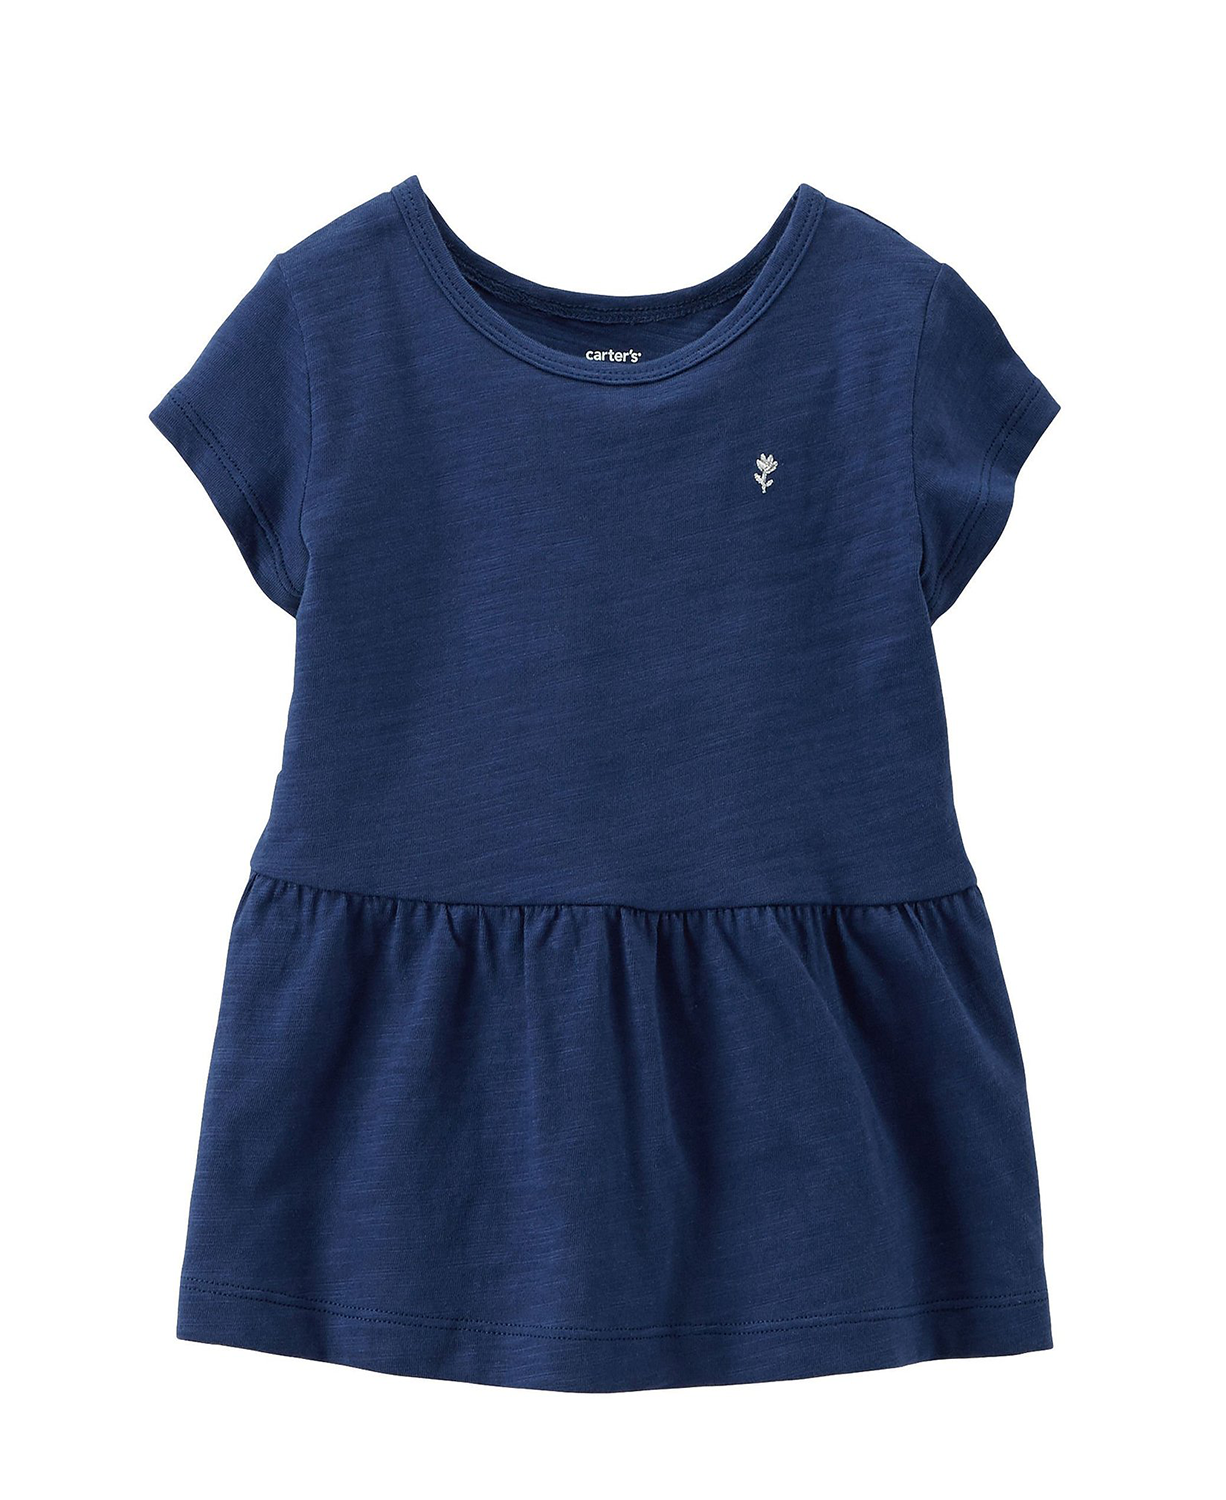 New Carter s Baby Toddlers Girls Navy Blue Toddler Girl